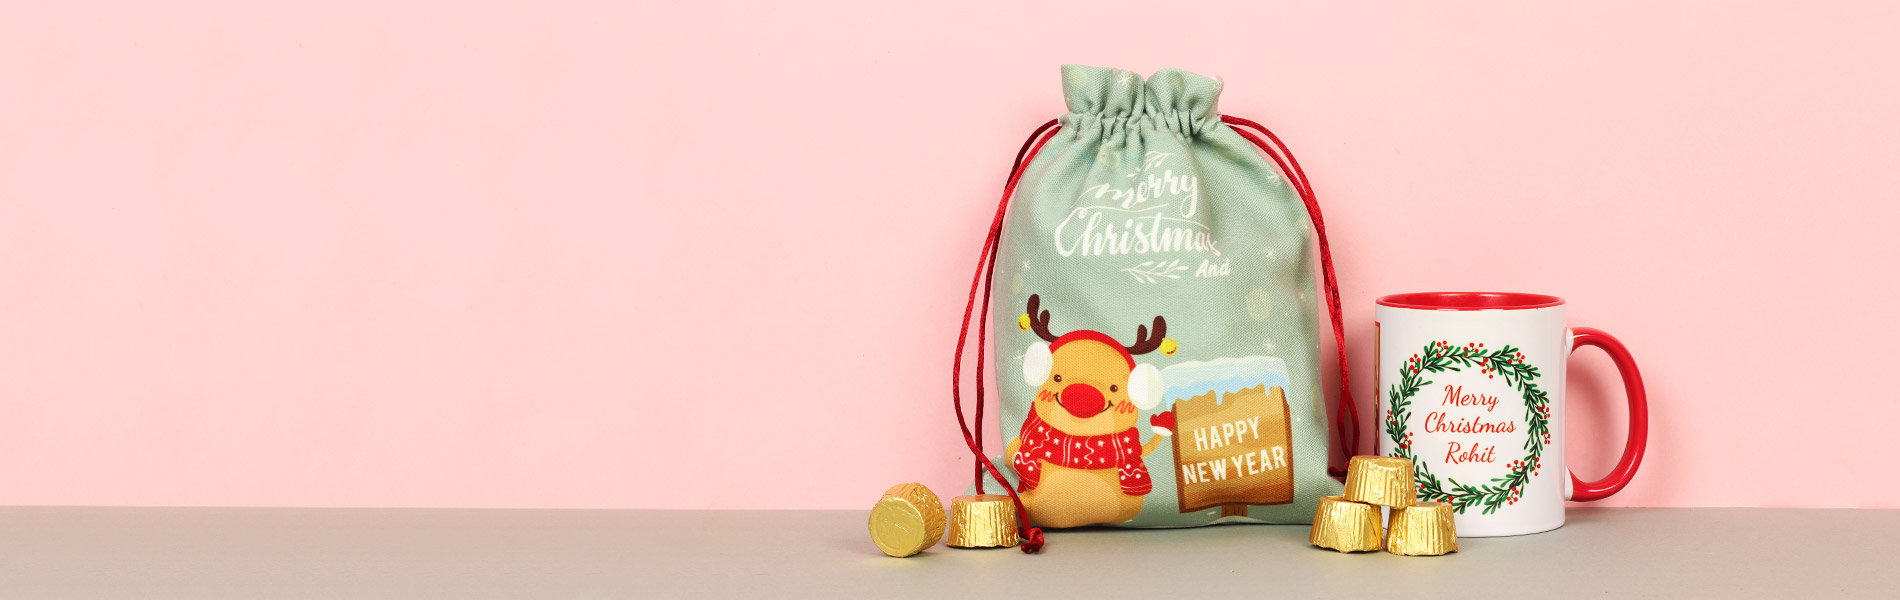 Send Christmas gifts online